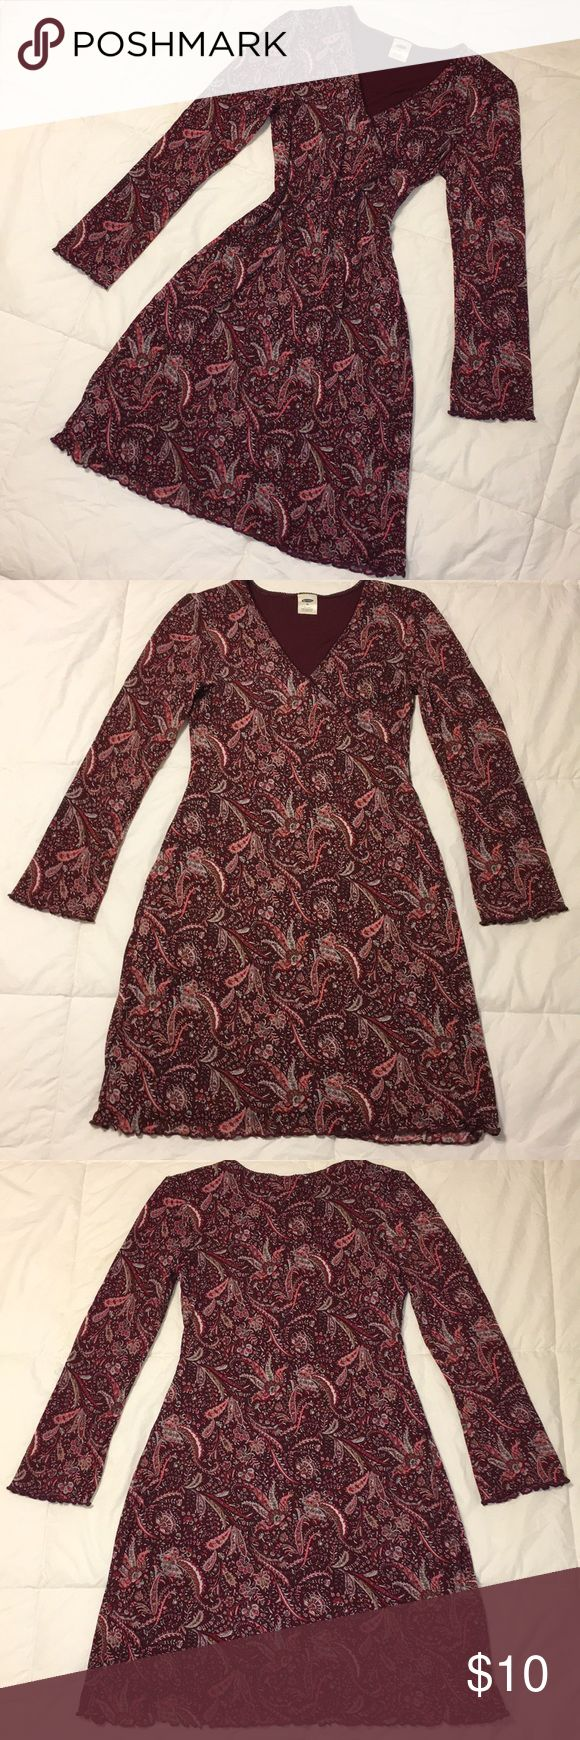 🌼💜 Old Navy Paisley Dress Beautiful deep rose and light pink paisley long sleeve dress! This dress is so pretty, lightweight, and perfect for spring! Ruffled hemline on sleeves and base of dress. EUC - no pulls, runs or stains anywhere! Color isn't as purple as pictures show, last picture shows true colors best.  🖤 BUNDLE TO SAVE 🖤 Old Navy Dresses Long Sleeve